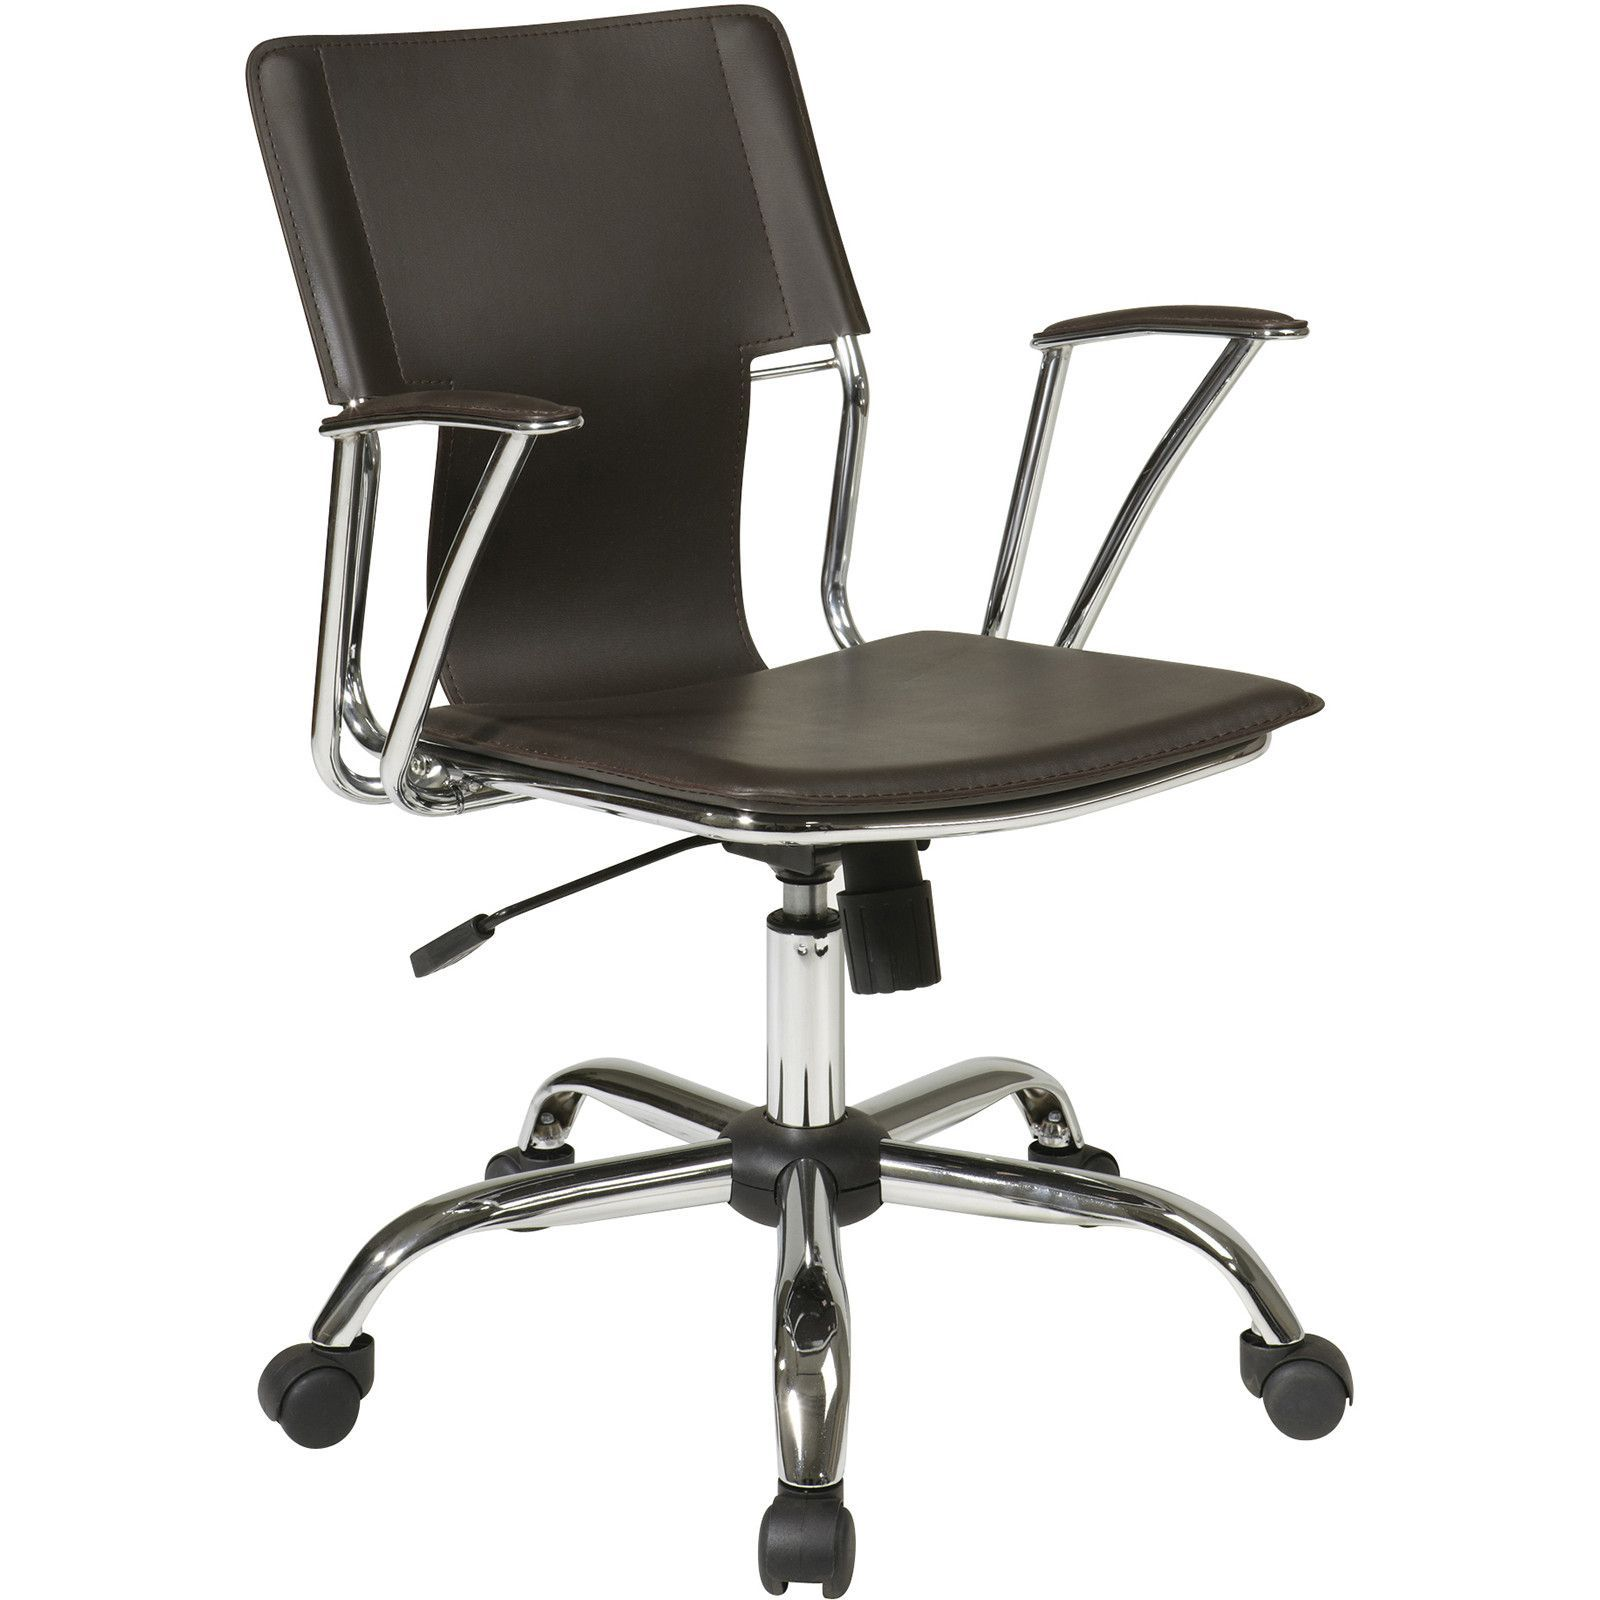 Dorado Office Chair with Fixed Padded Arms & Chrome Finish, Espresso